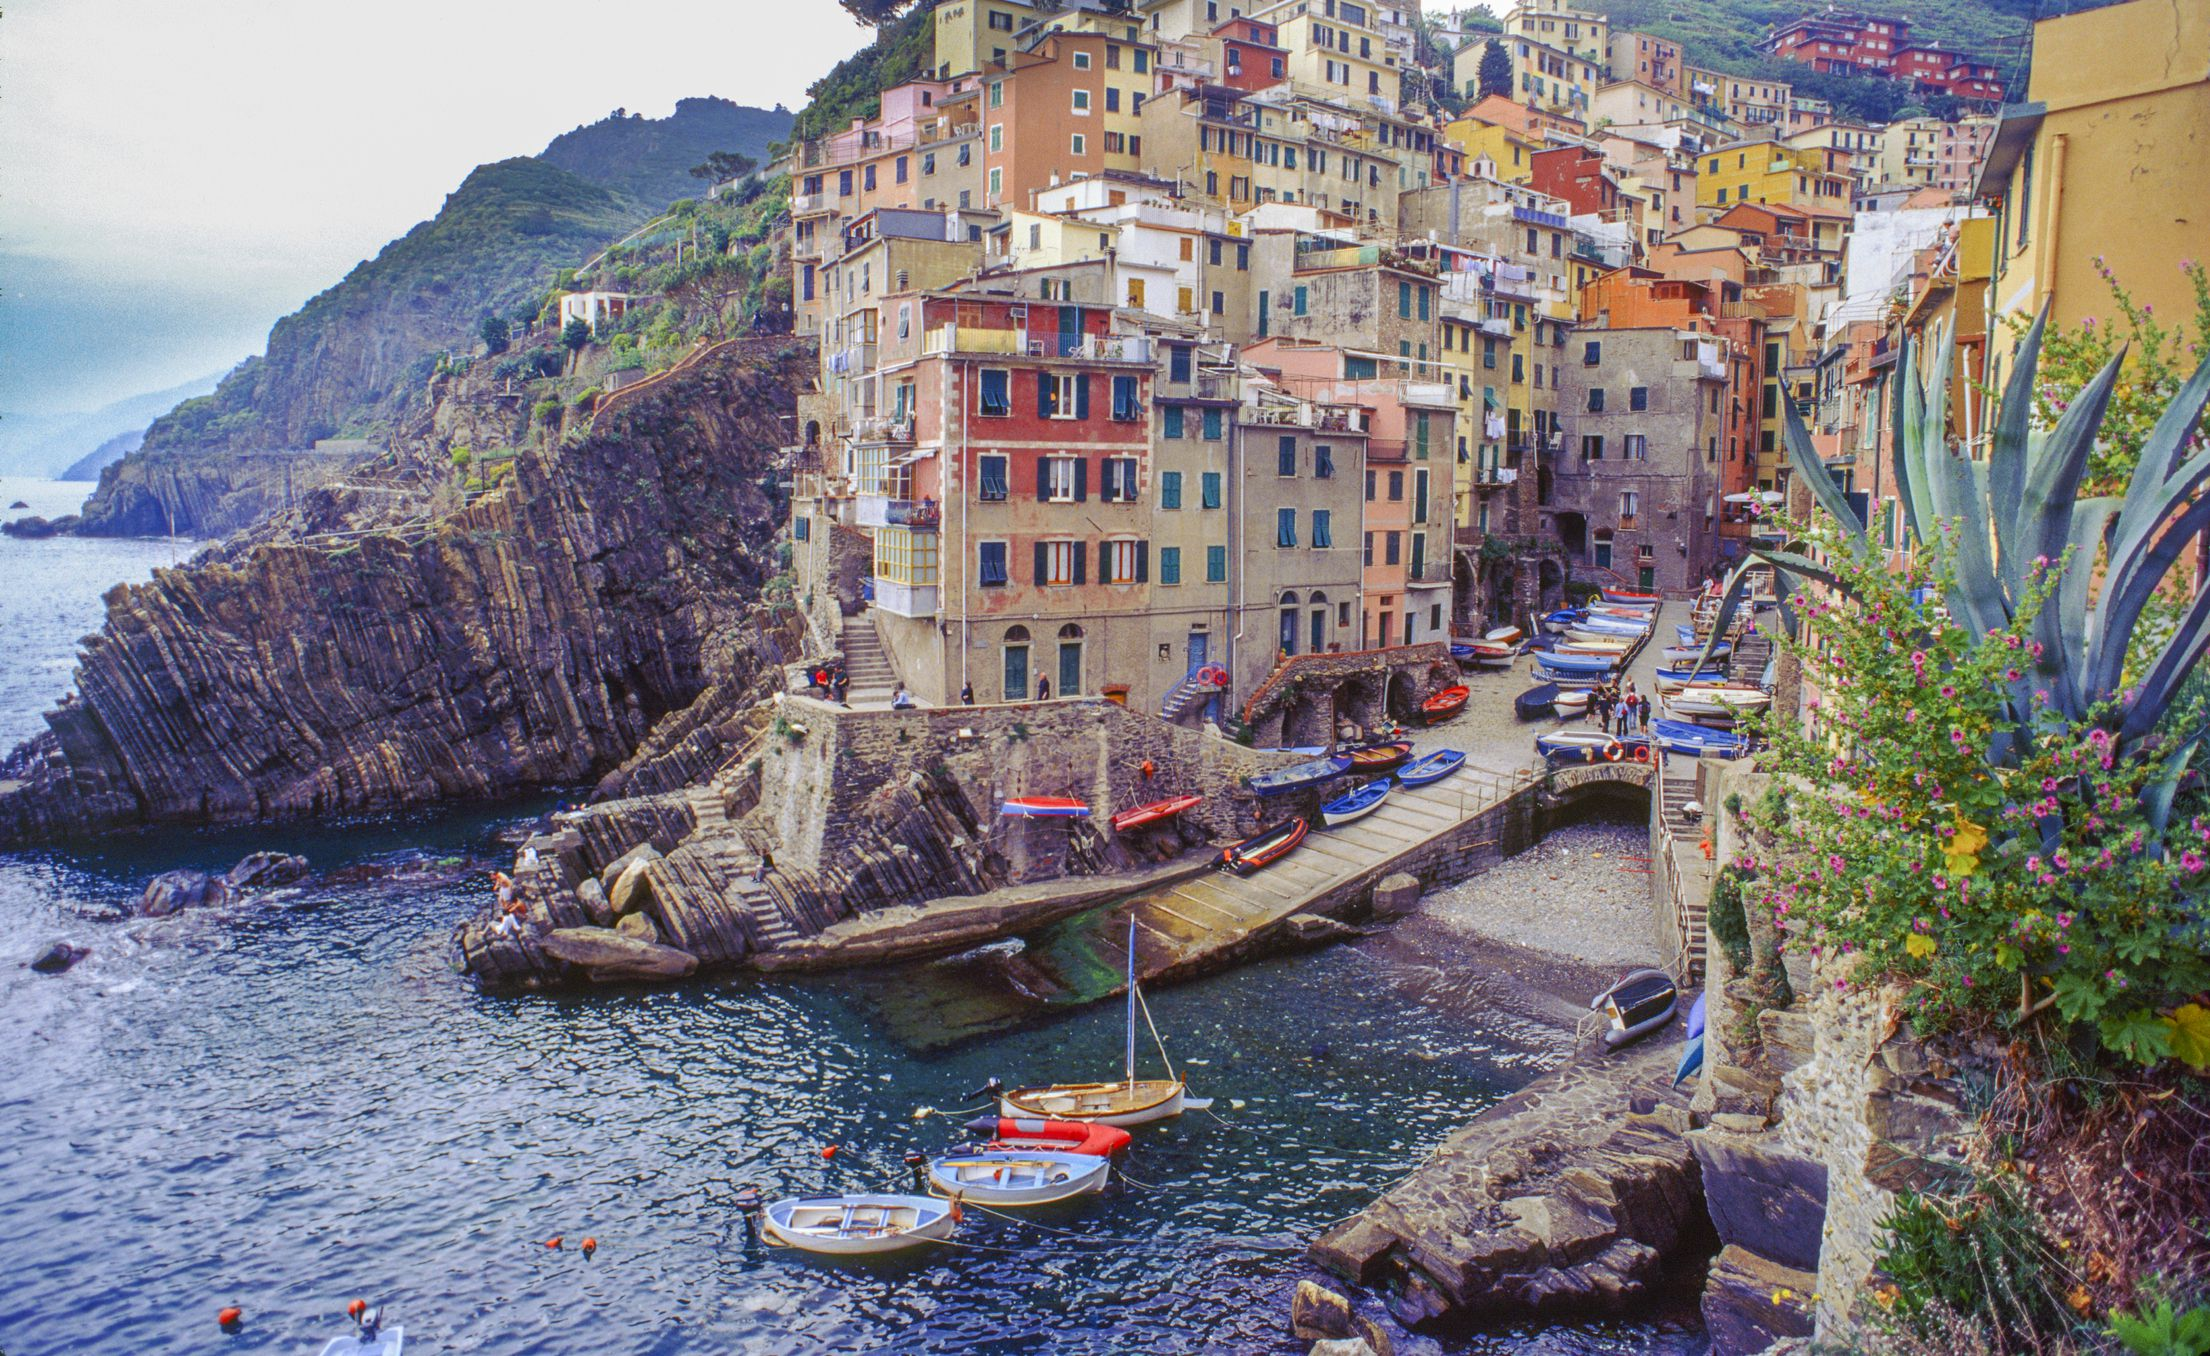 What to Do in Italy's Cinque Terre Region